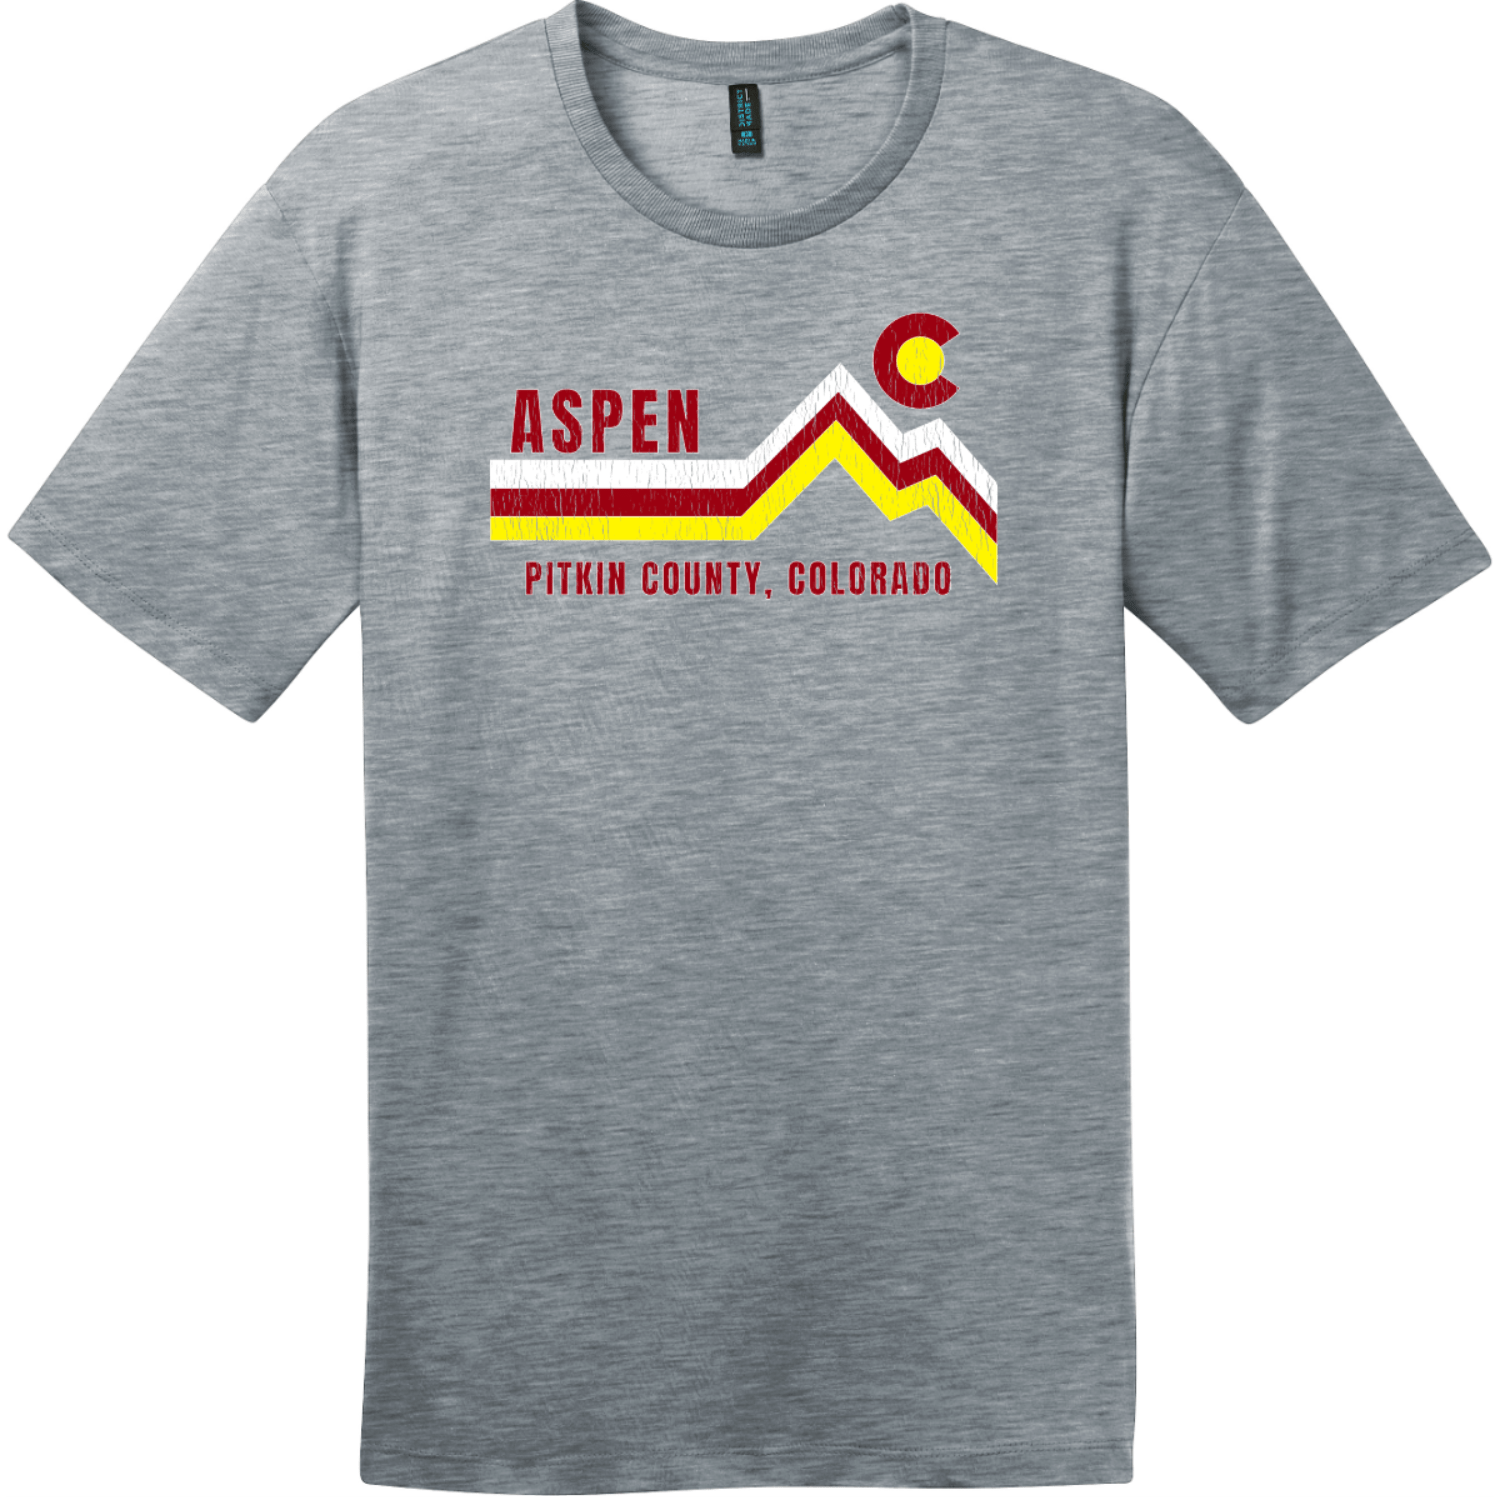 Aspen Pitkin County Colorado T-Shirt Heathered Steel District Perfect Weight Tee DT104